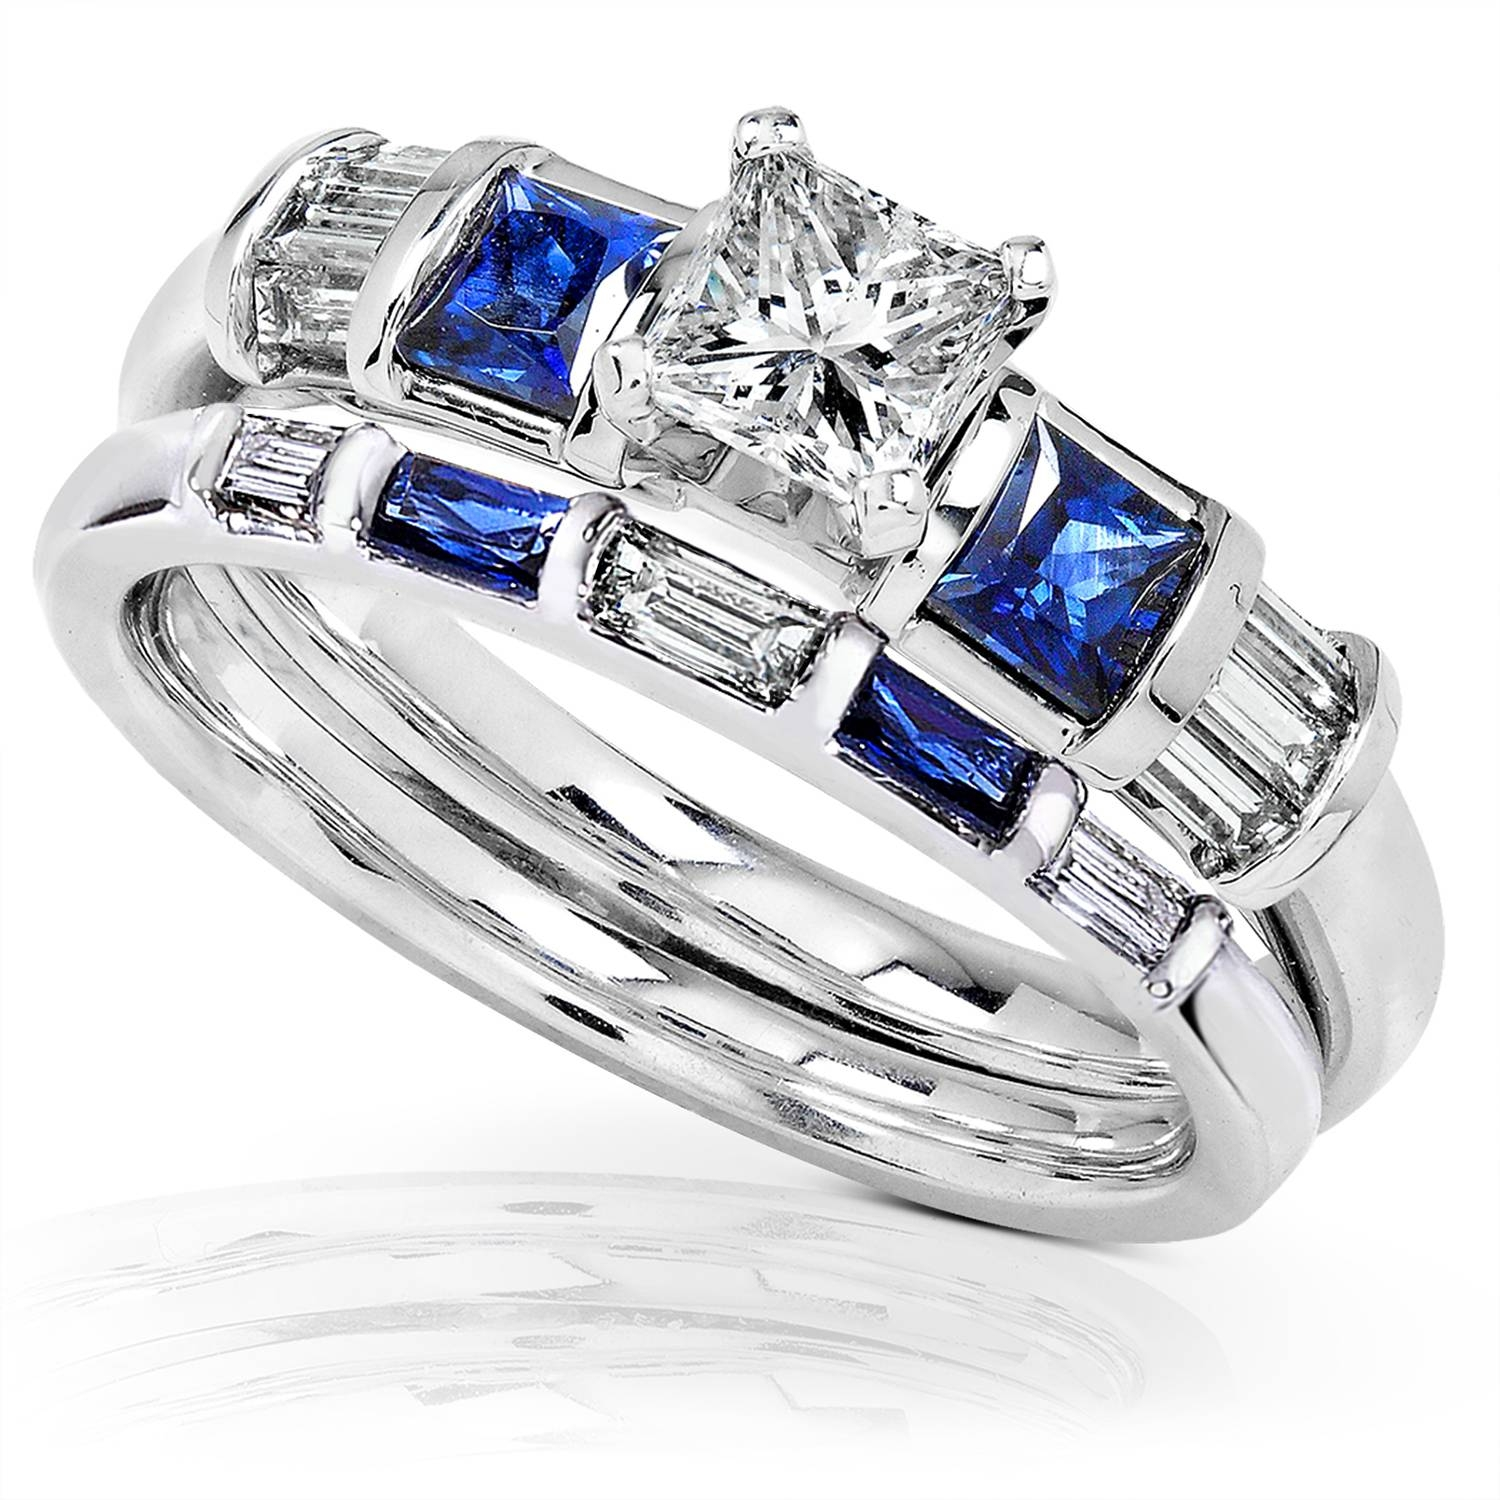 Blue Sapphire & Diamond Wedding Rings Set 1 Carat (Ctw) In 14K With Diamond Wedding Rings (View 3 of 15)